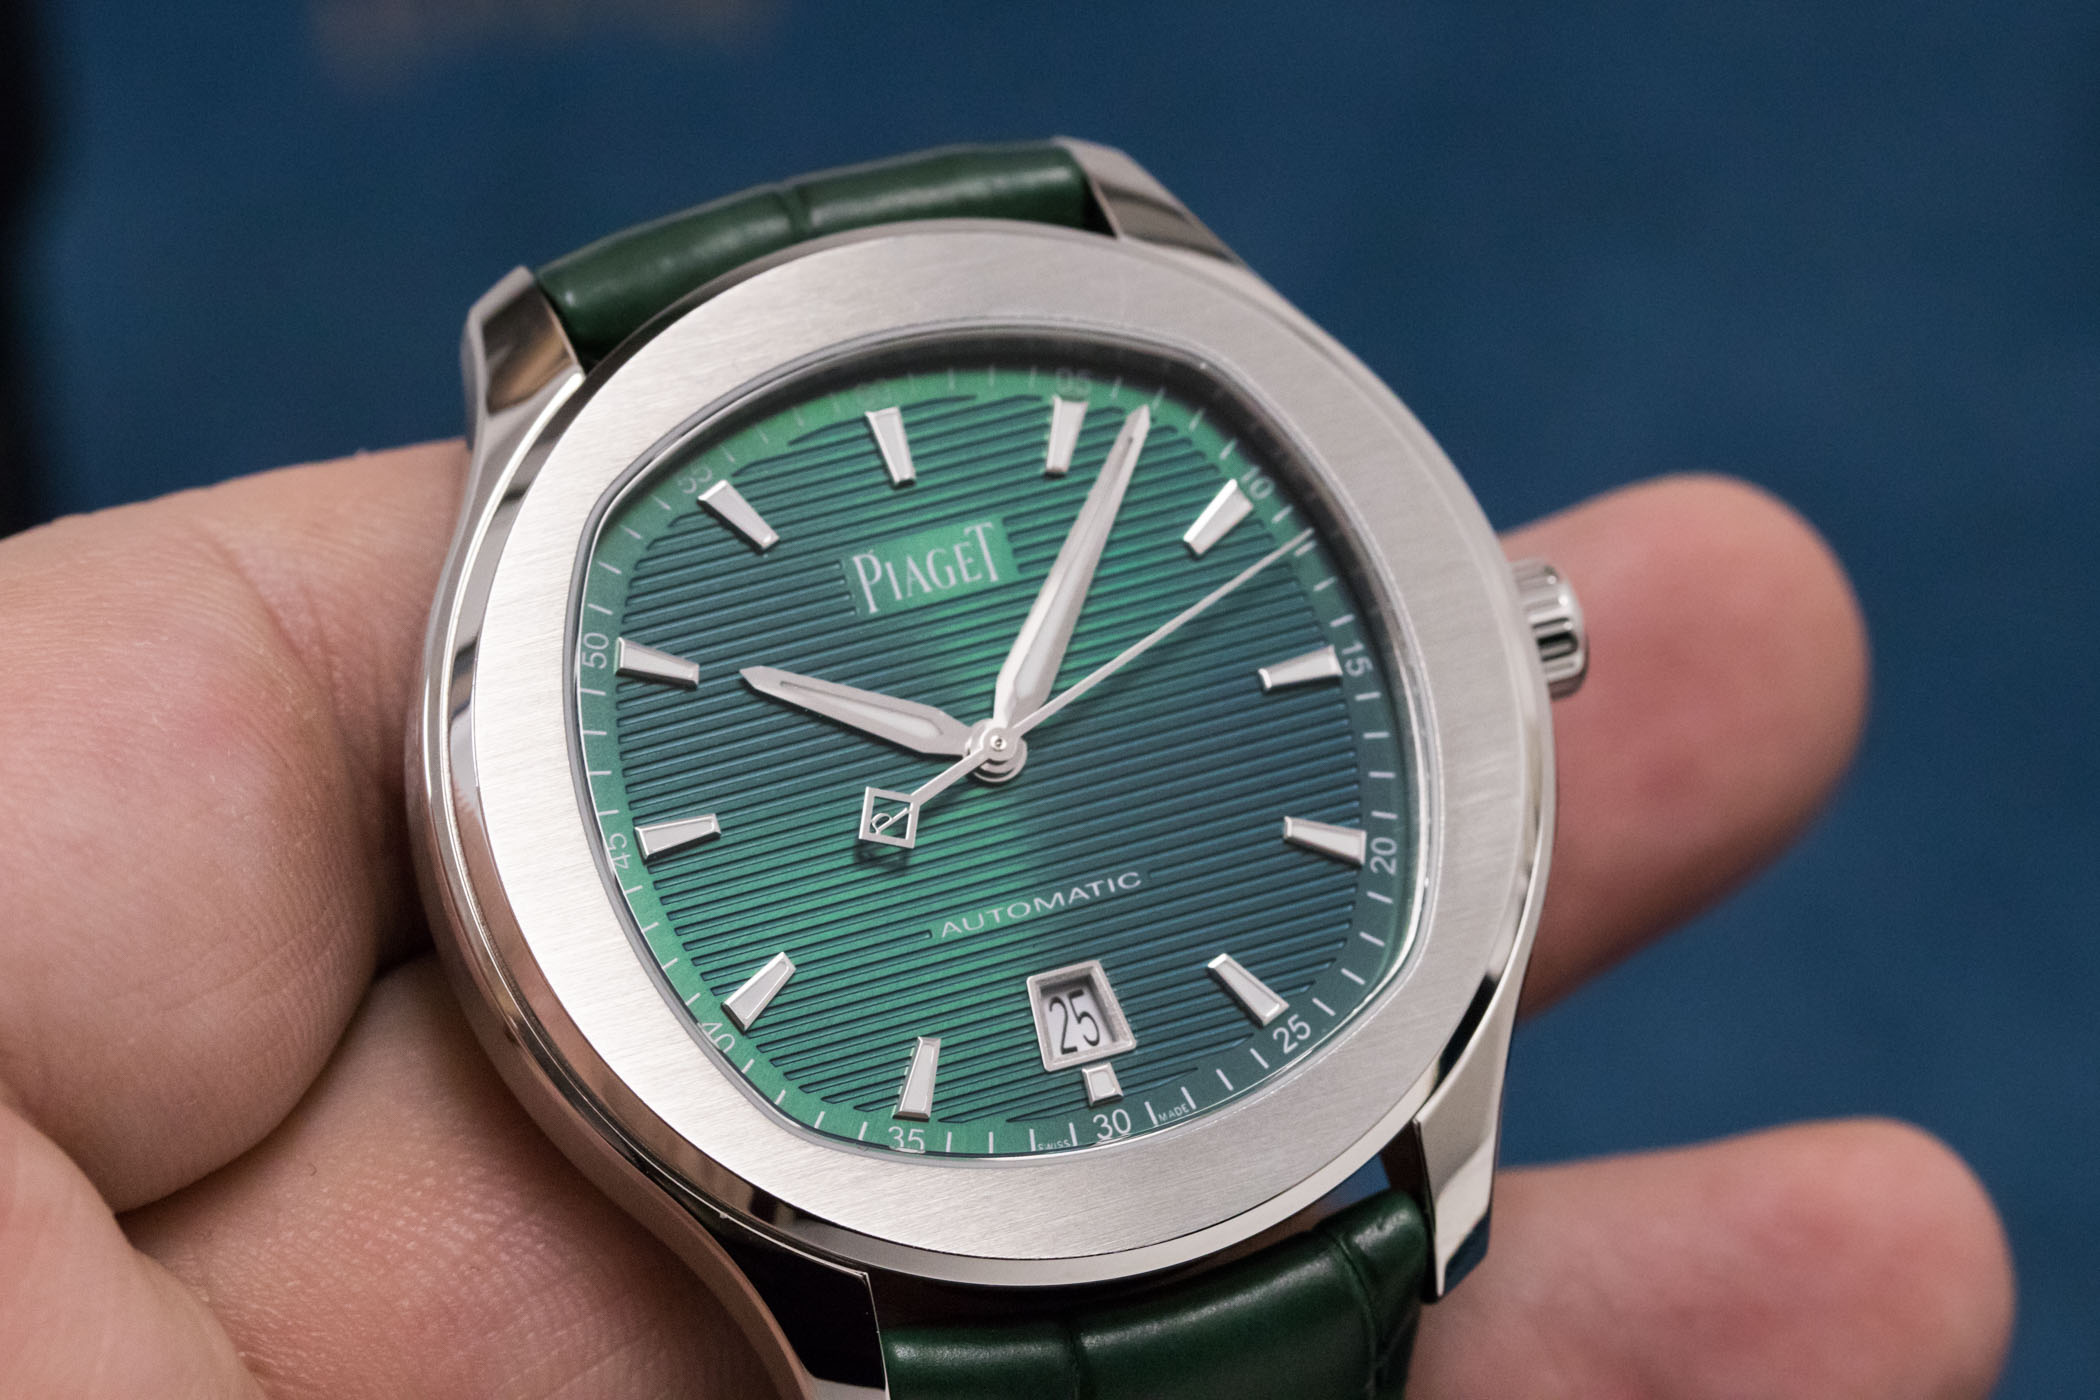 Piaget Polo S Green Dial - SIHH 2019 review - 9